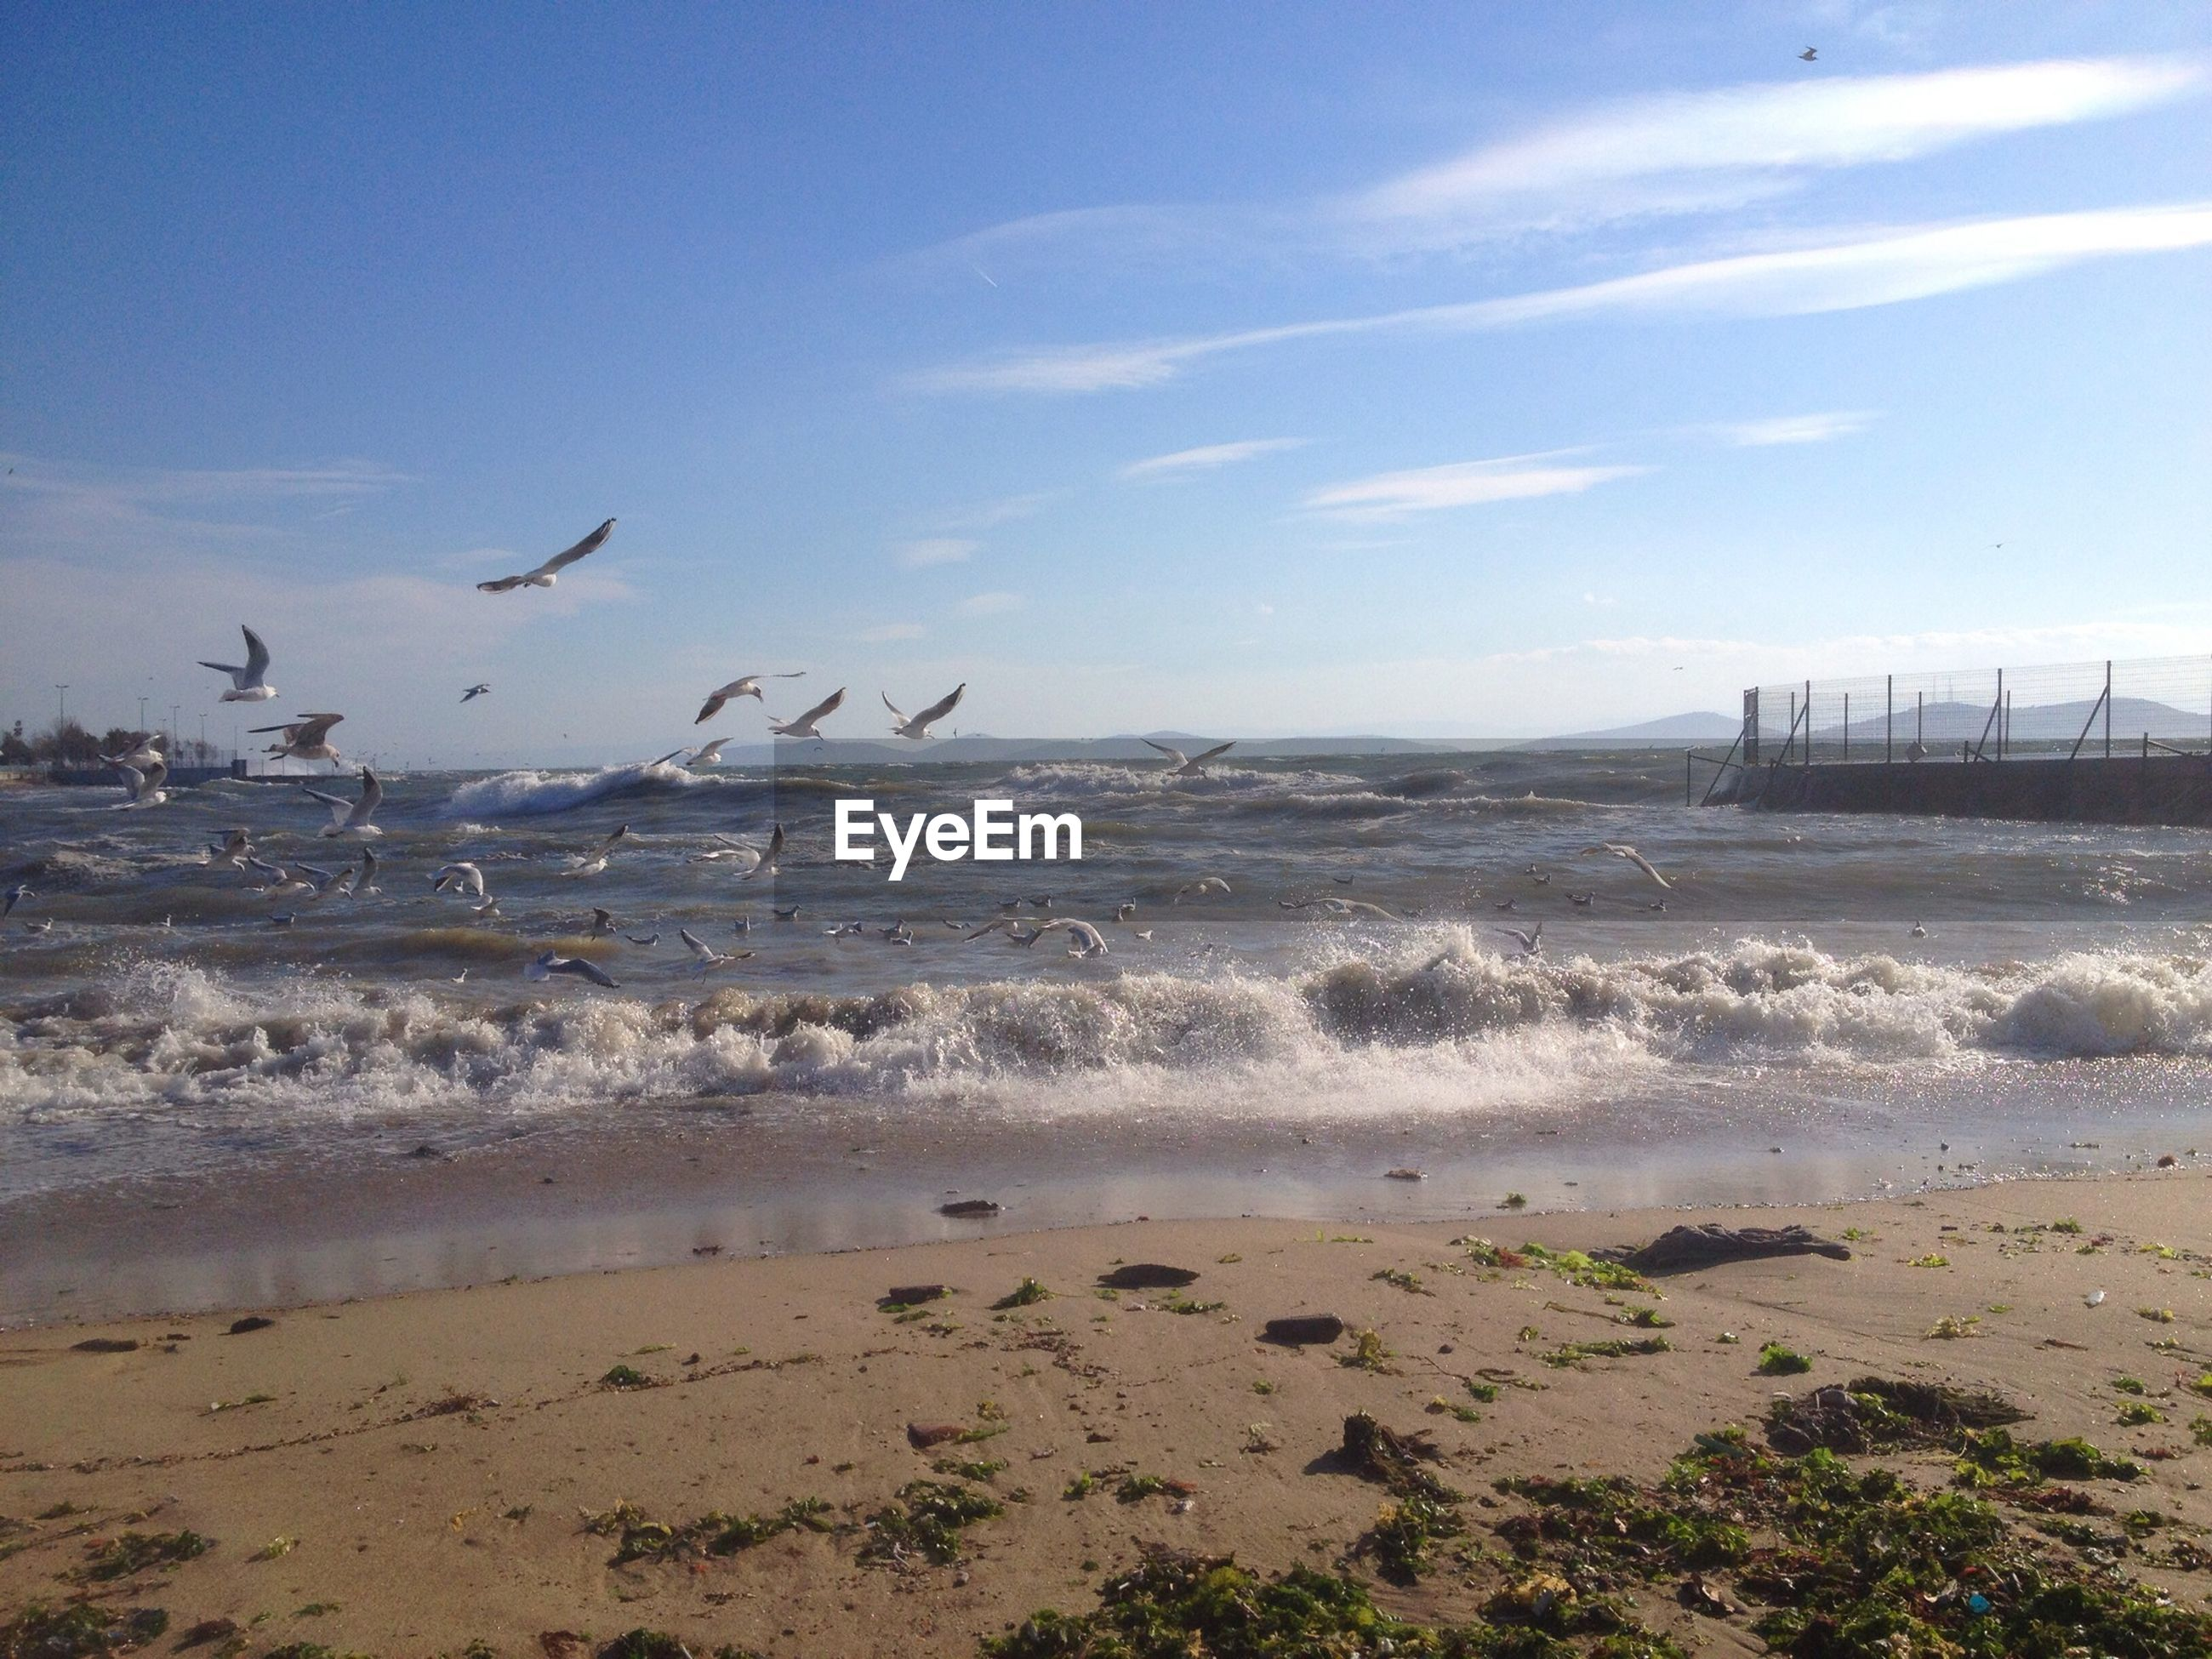 sea, water, beach, horizon over water, bird, sky, shore, scenics, animal themes, wave, tranquil scene, beauty in nature, sand, tranquility, nature, animals in the wild, wildlife, seagull, surf, idyllic